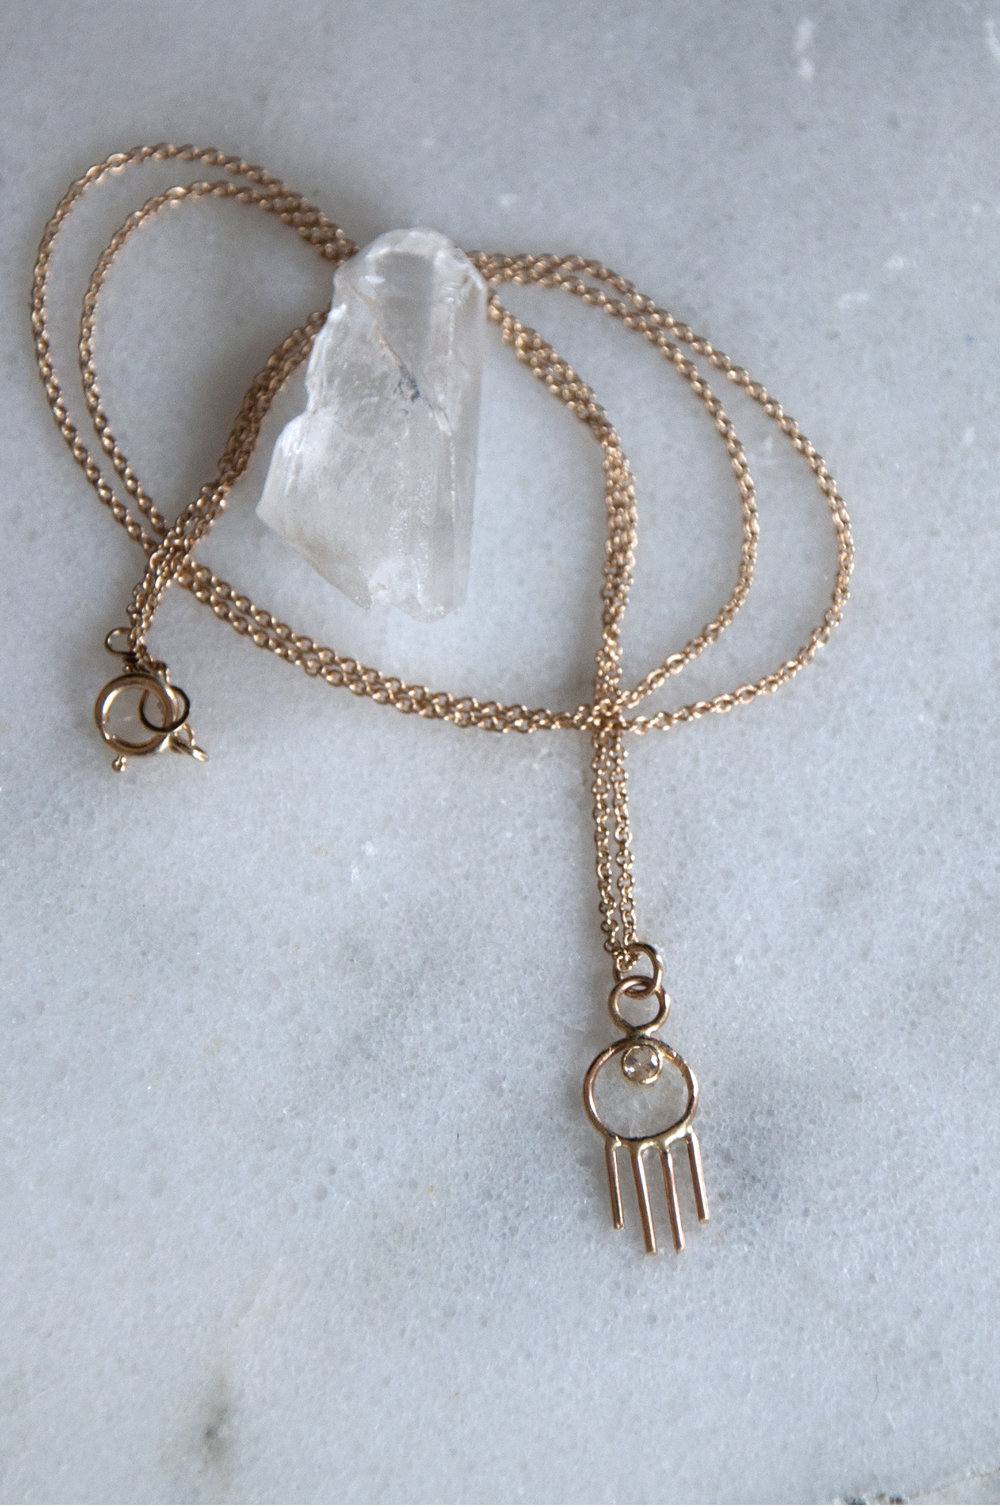 Little Ray Necklace Hand fabricated charm from solid 14k gold, with white saphire stone.